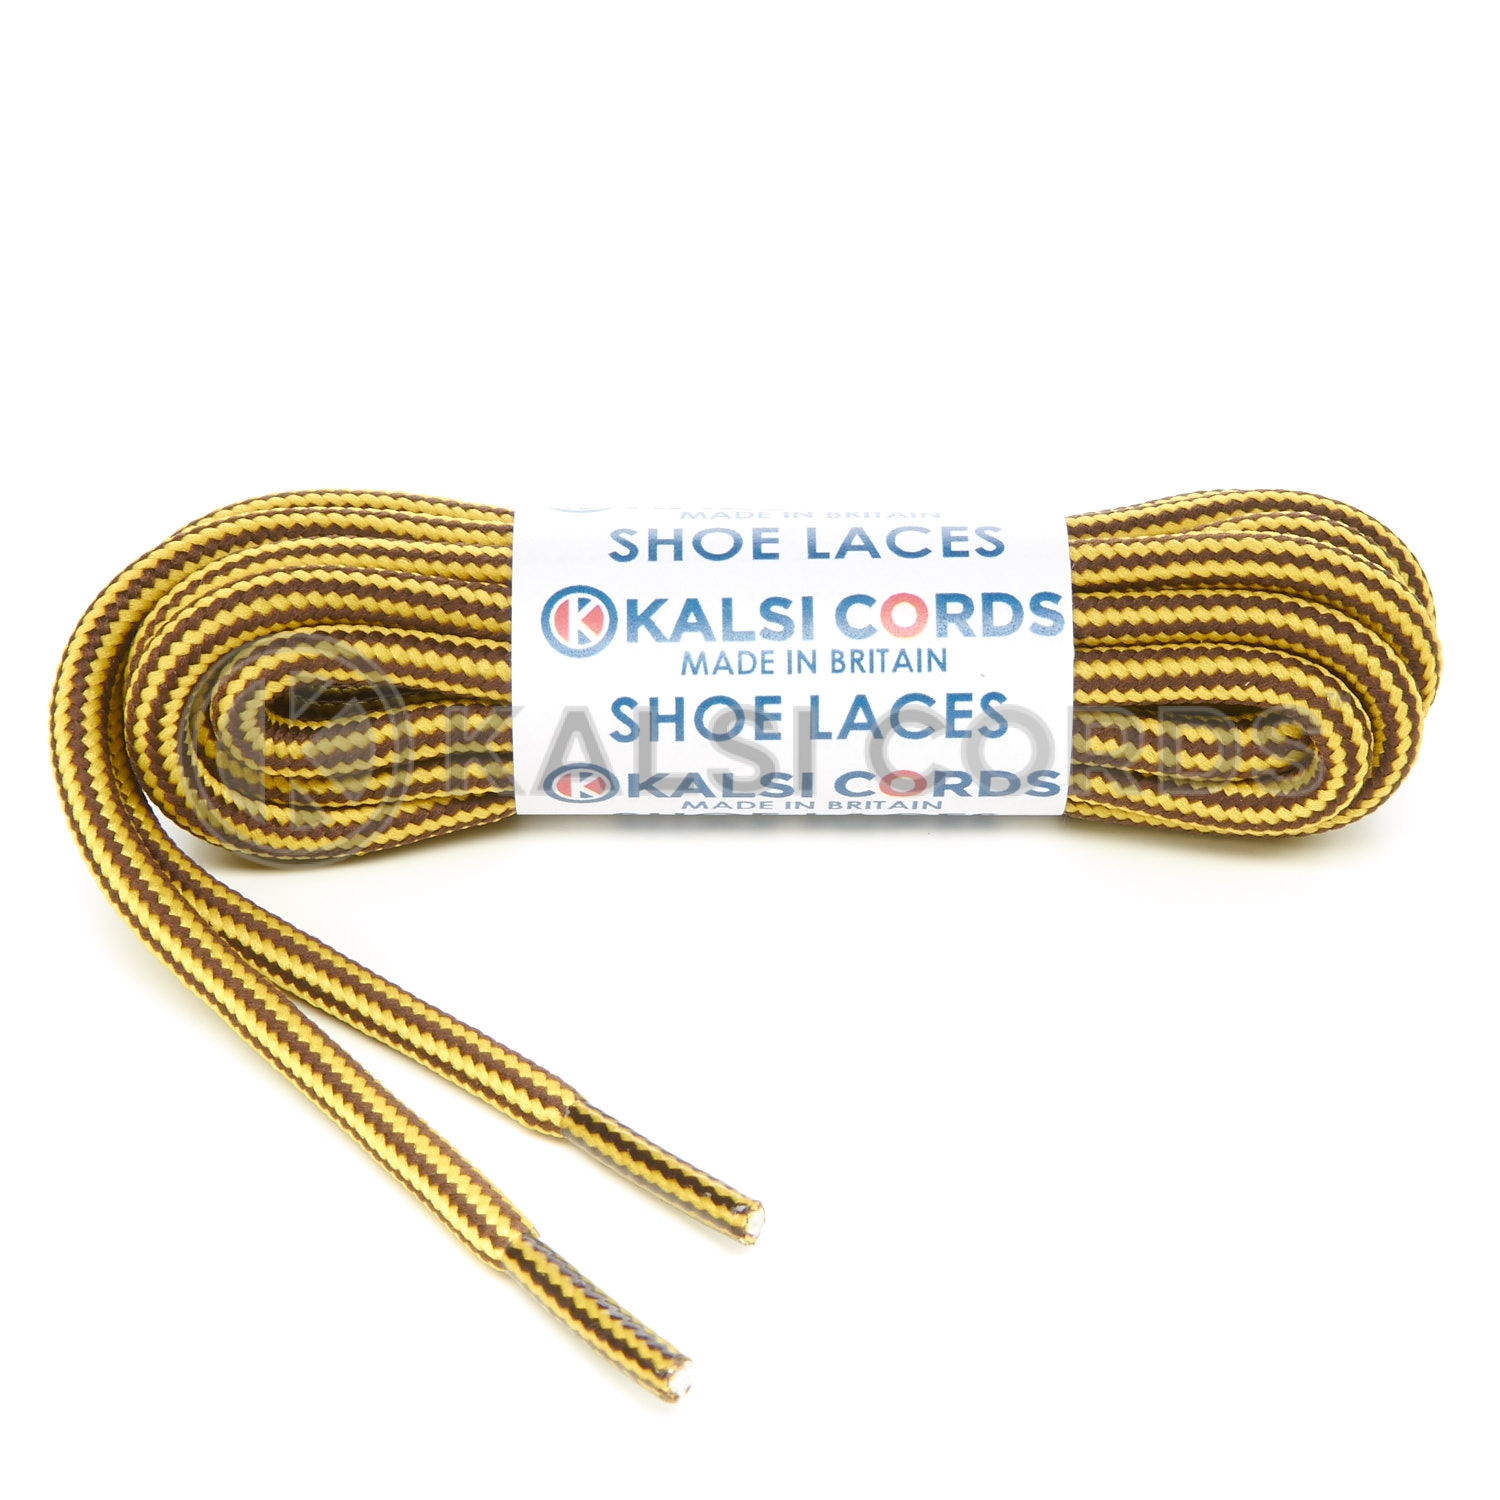 T621 5mm Round Cord Stripe Shoe Laces Yellow York Brown Kids Trainers Adults Hiking Walking Boots Kalsi Cords